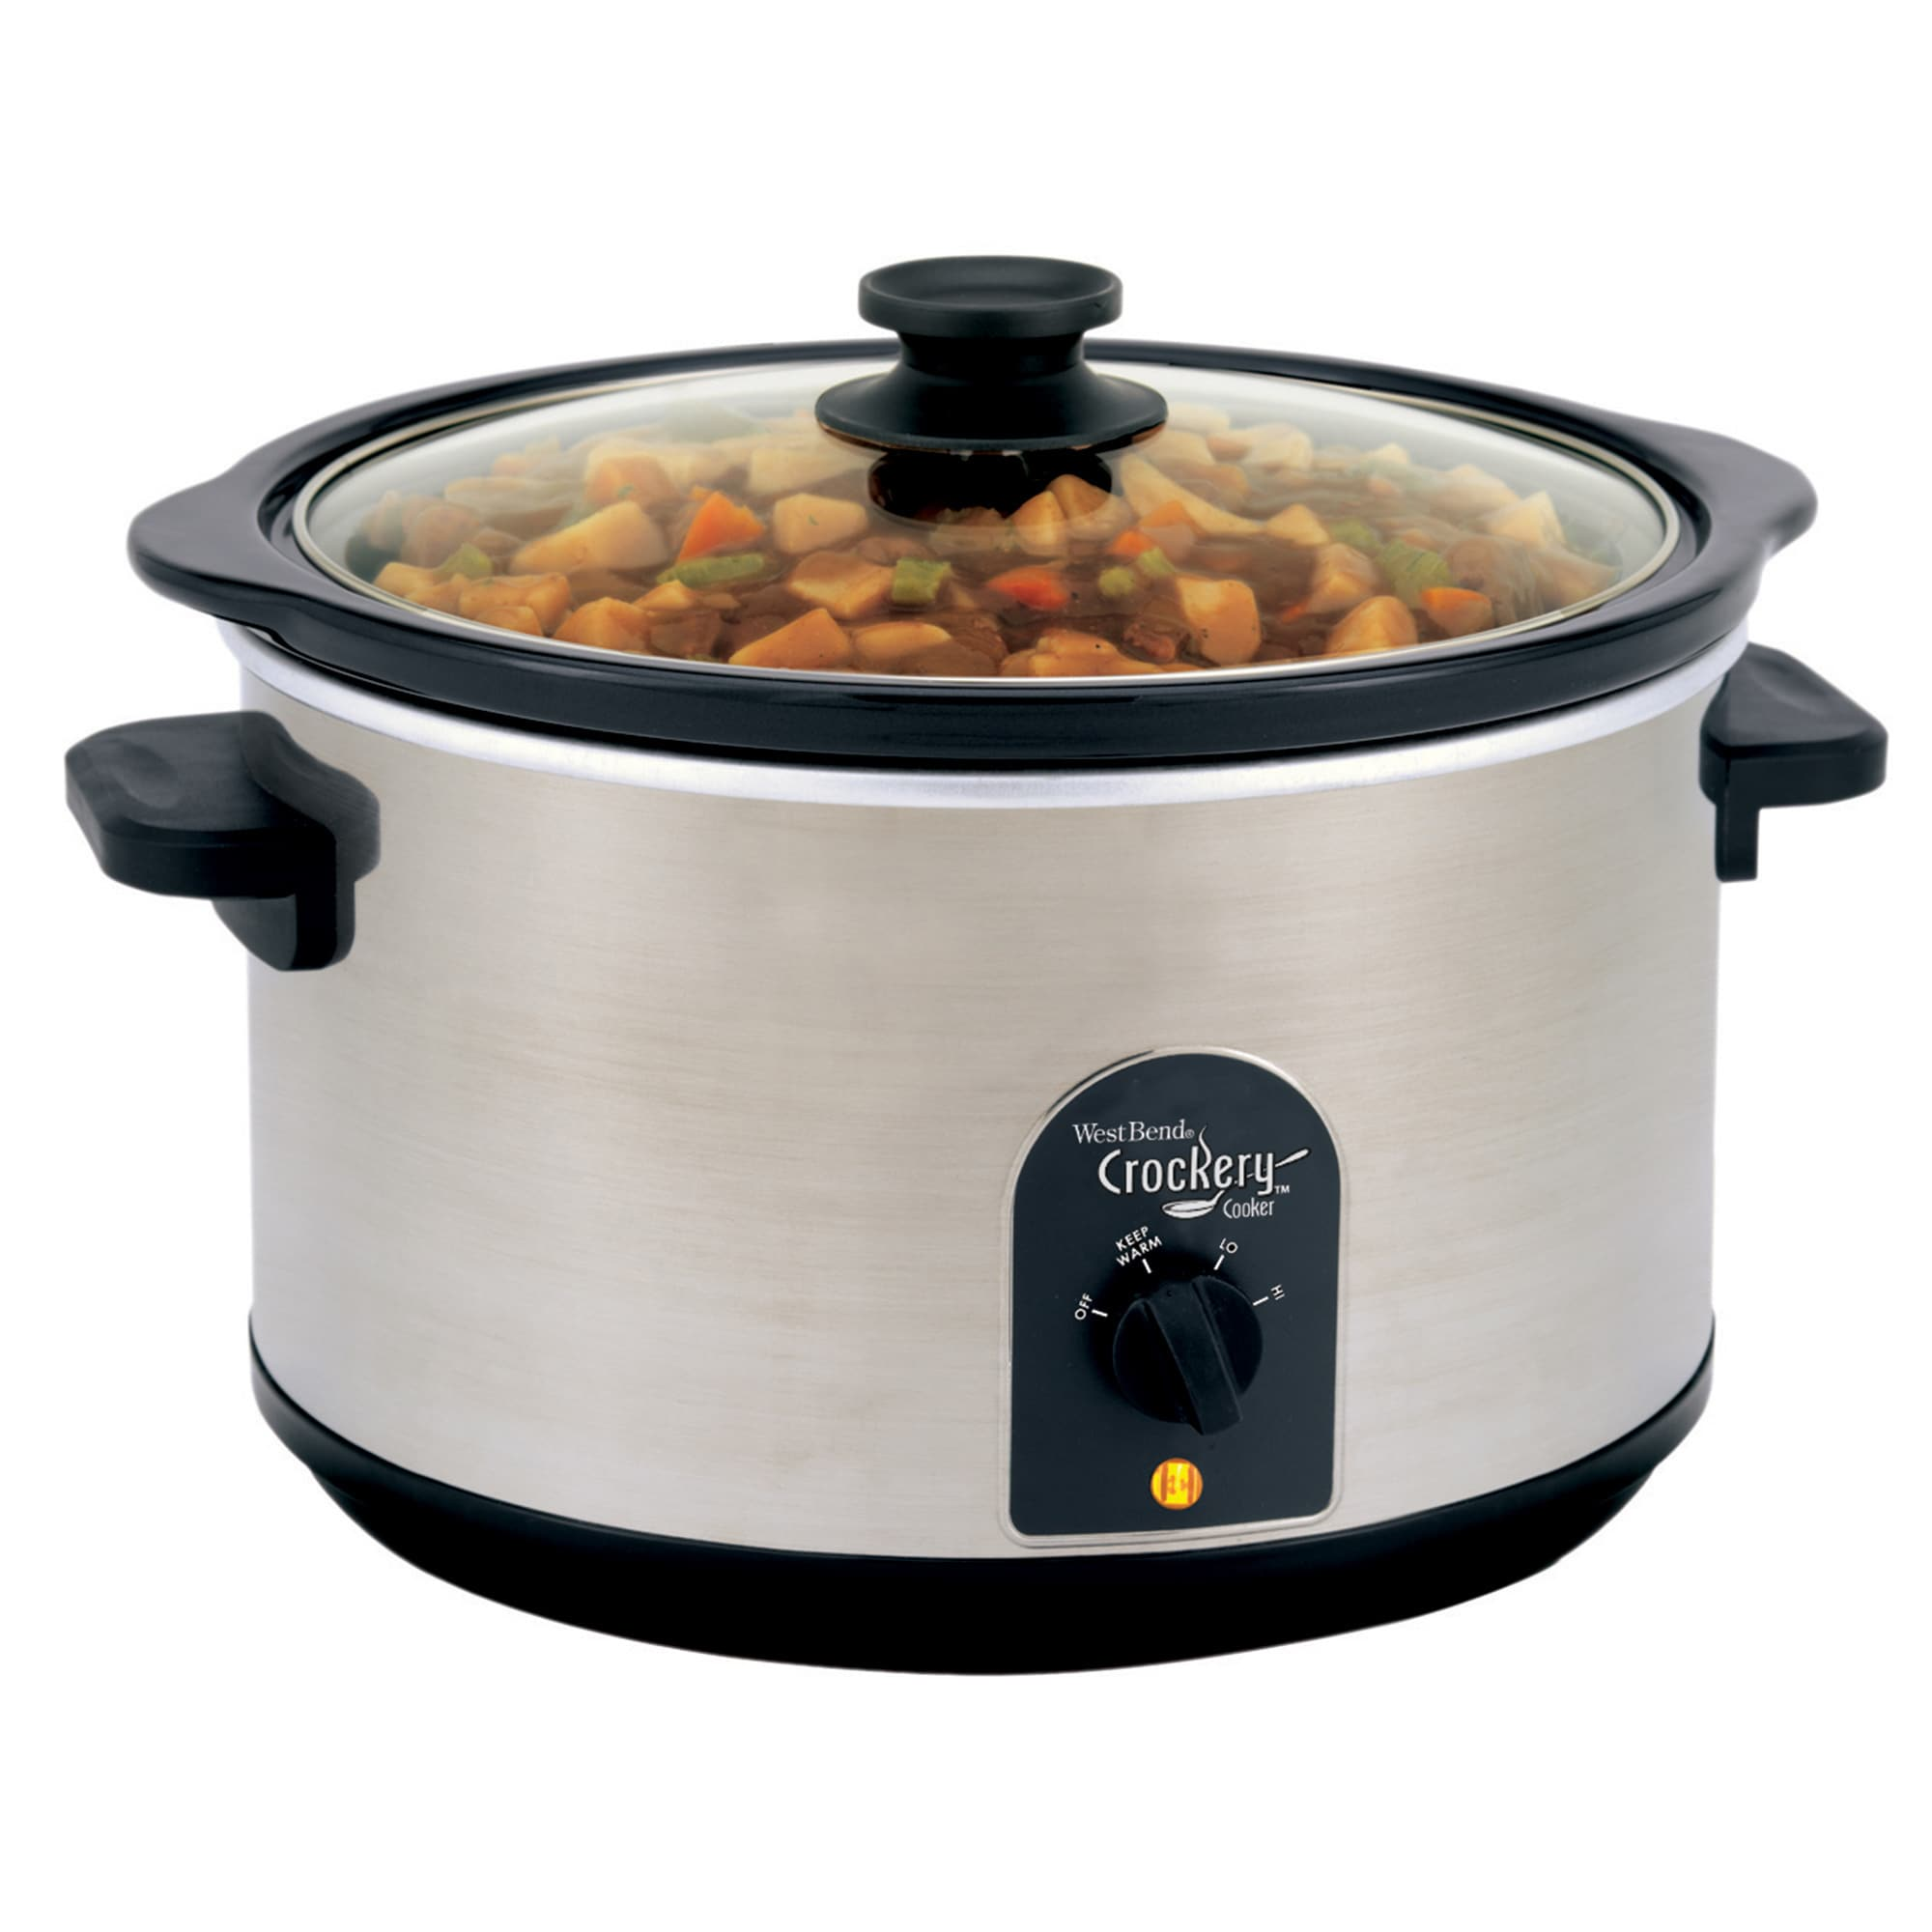 West Bend 6 Quart Round Crockery Cooker, Silver stainless...